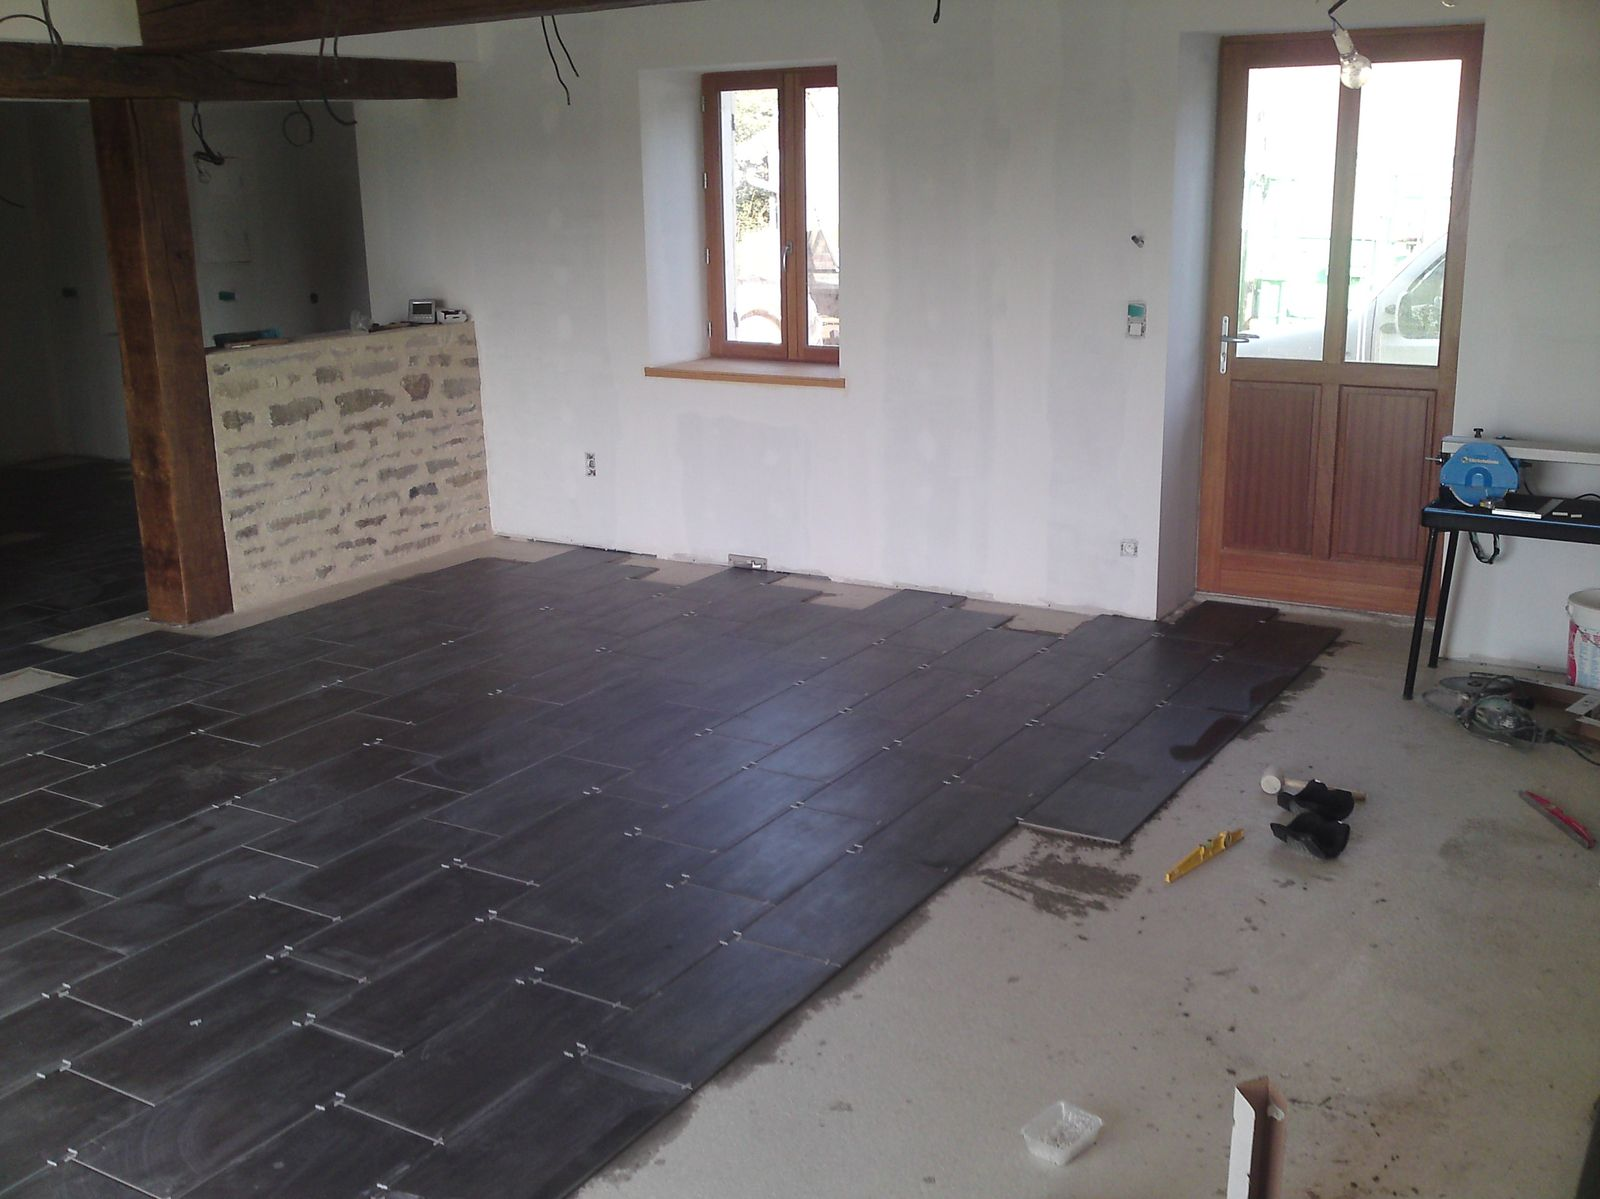 Carrelage salon suite renovation d 39 une fermette en for Carrelage pour salon